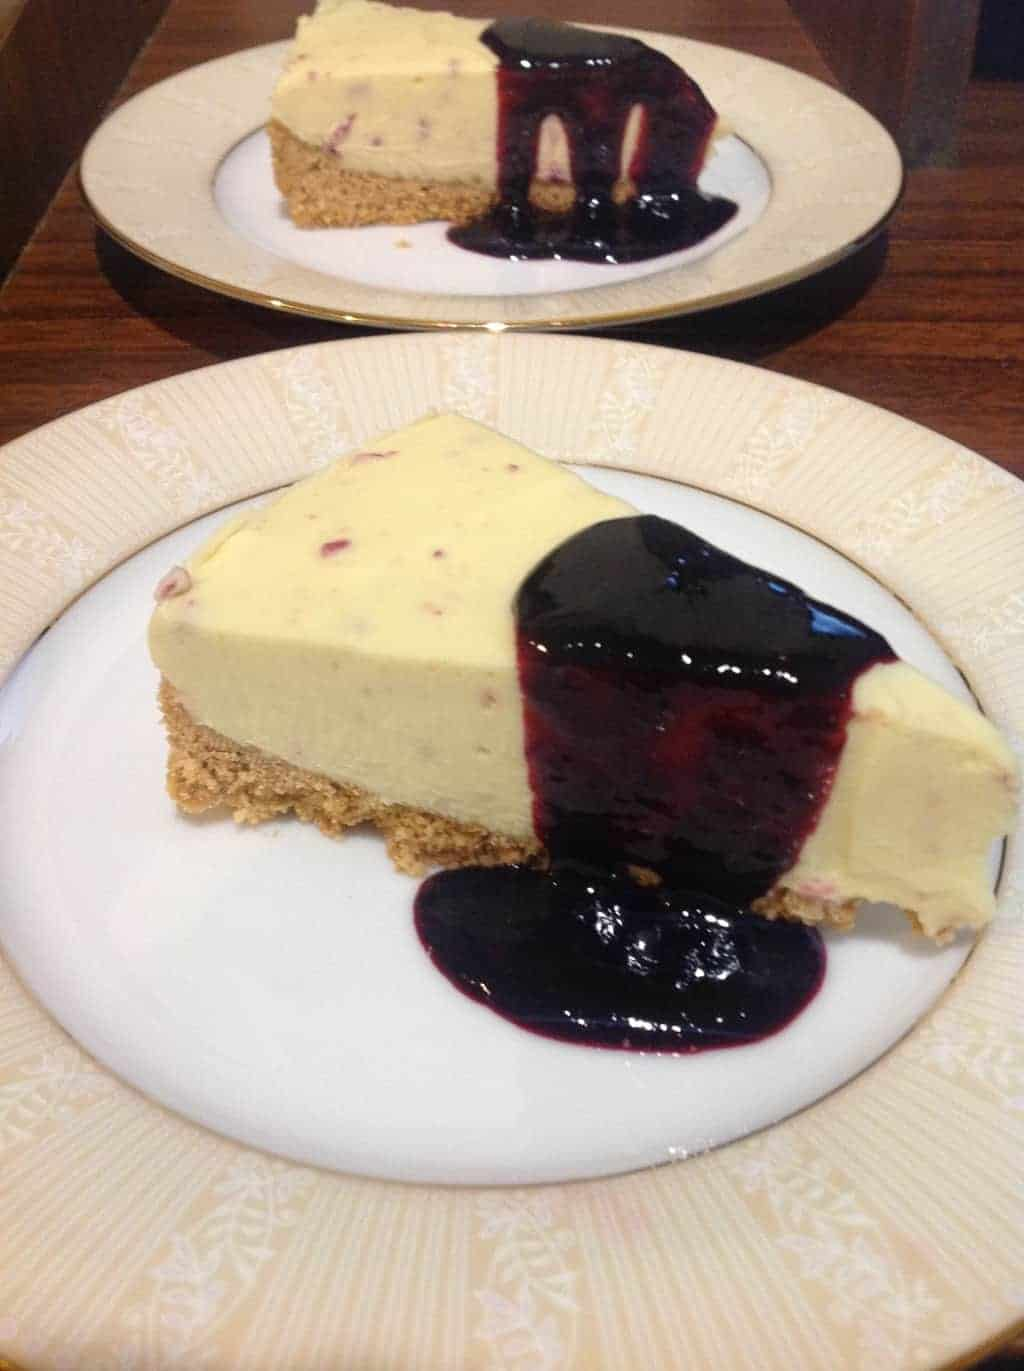 Divine White Chocolate Cheesecake & Berry Coulis